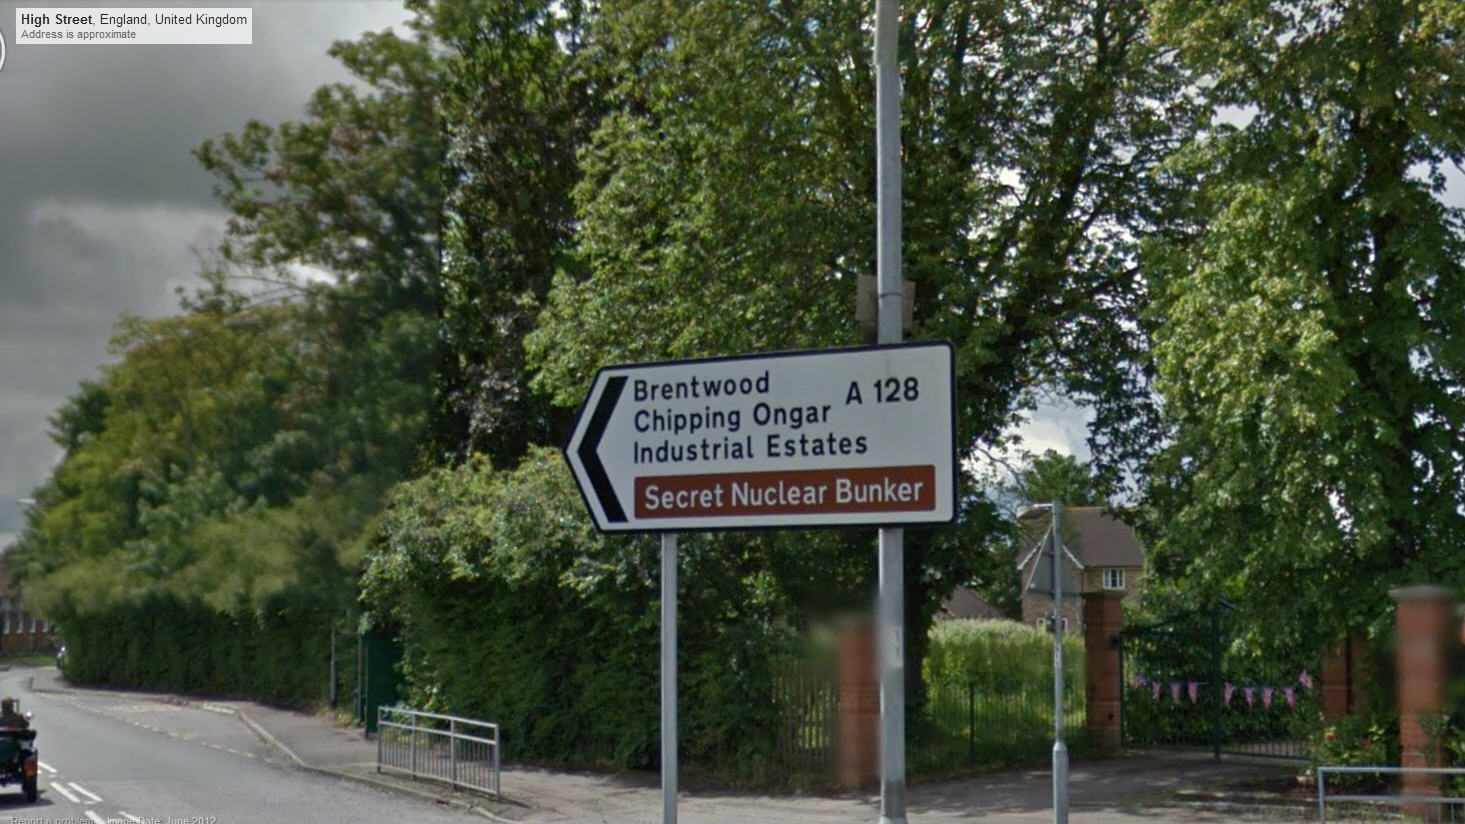 Map Of Uk Nuclear Bunkers.This Way To The Secret Nuclear Bunker Psst Don T Tell Anyone